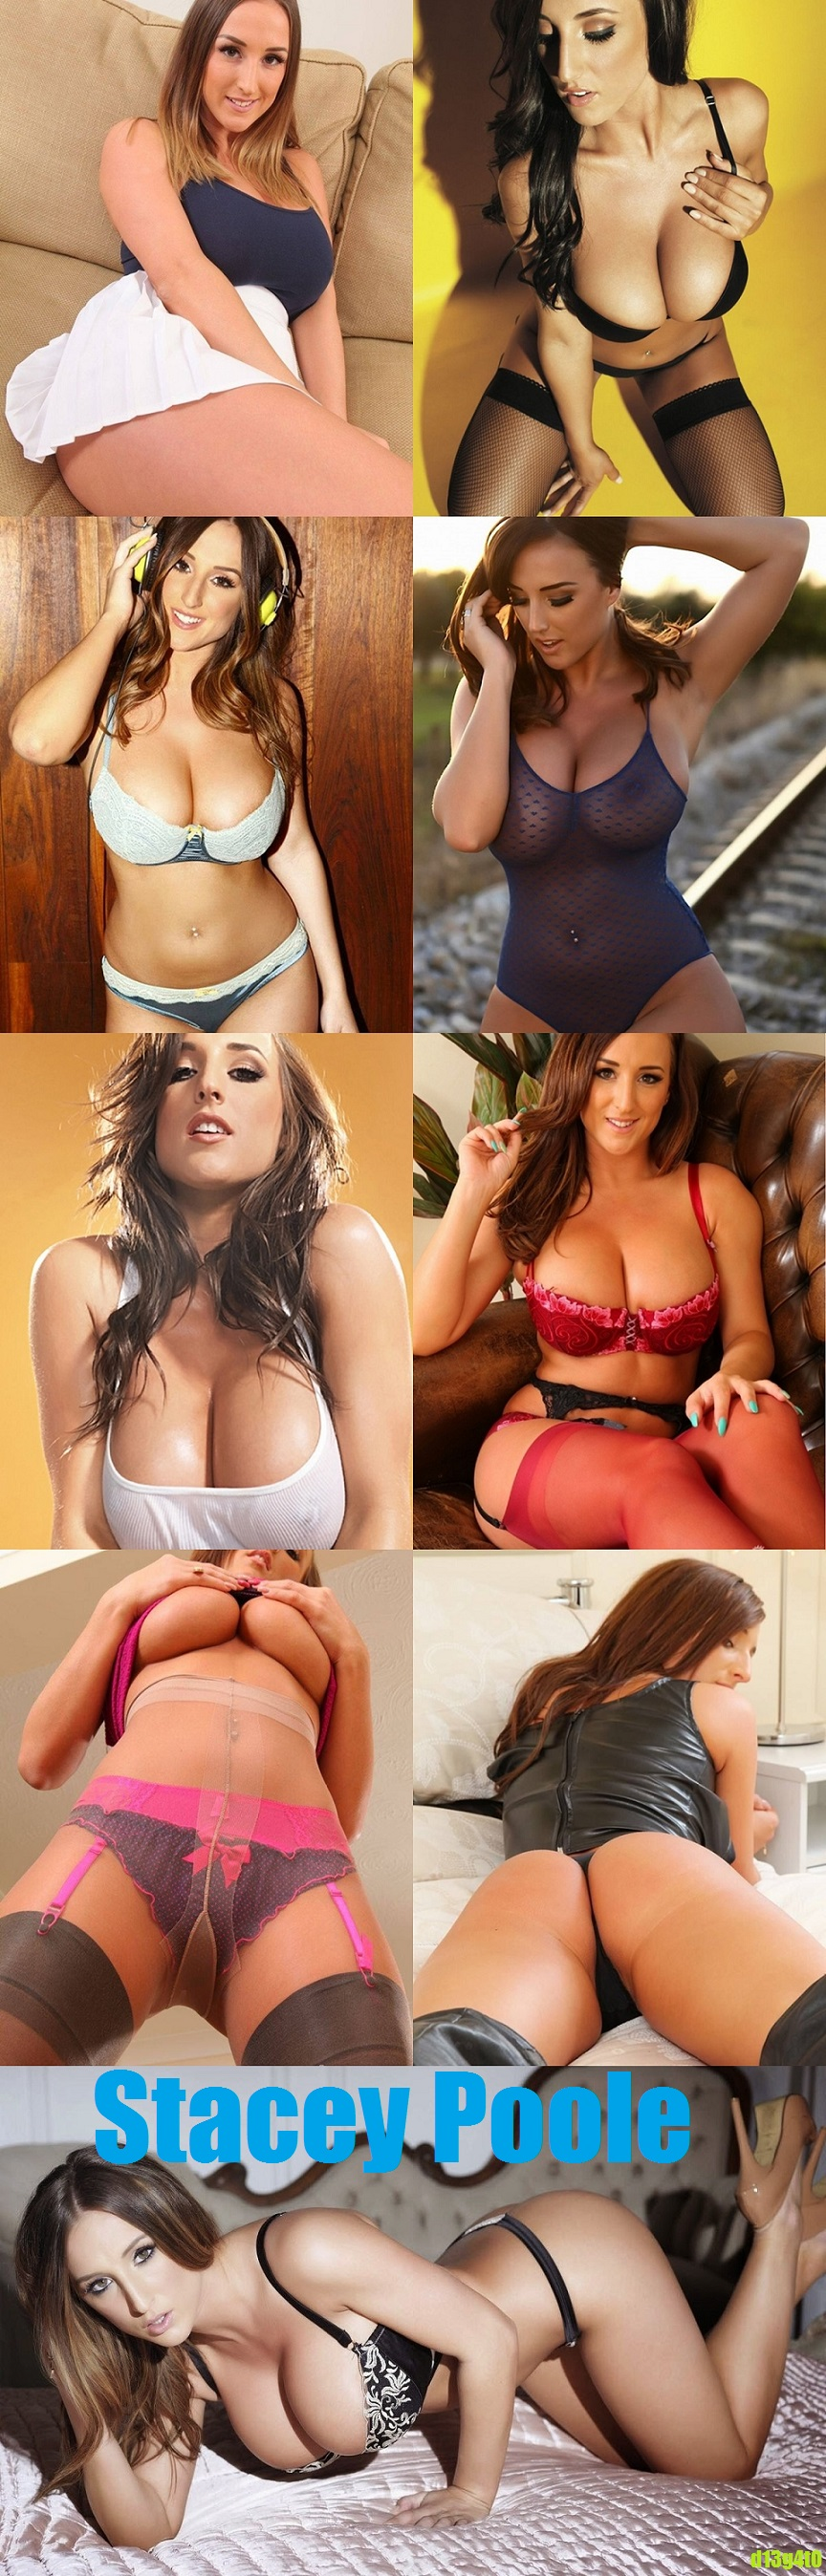 Volleyball Wallpaper Quotes The Gallery For Gt Stacey Poole Gif